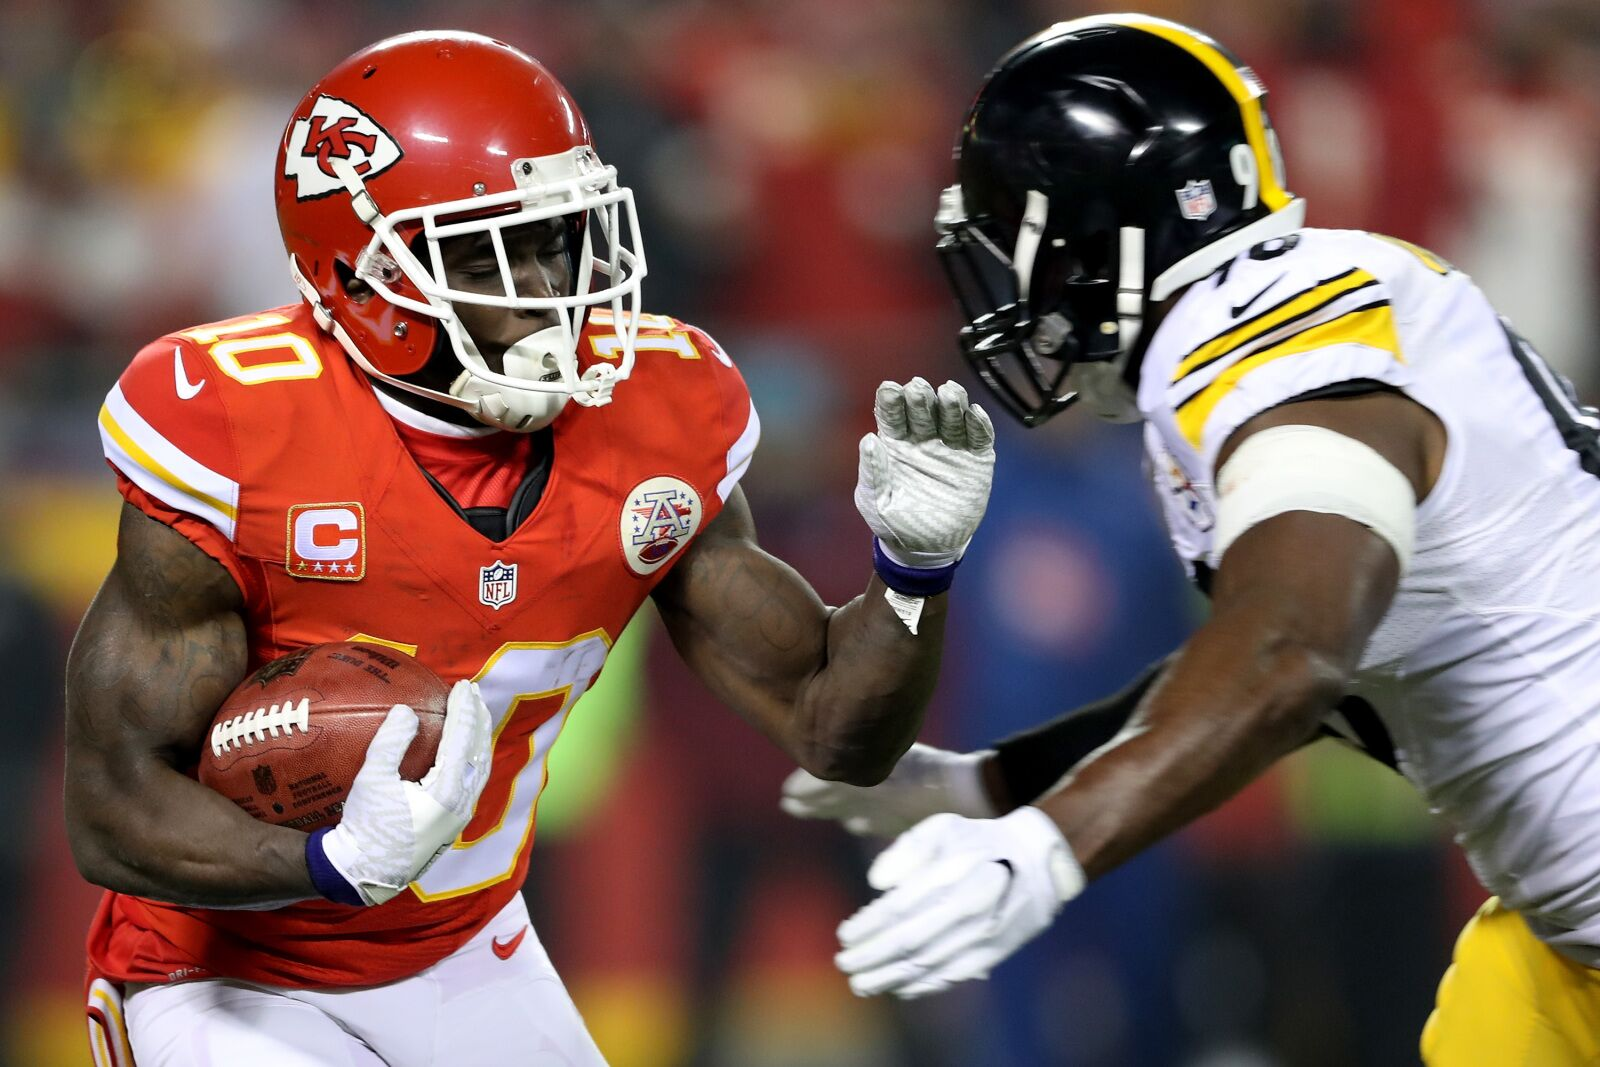 e5fc544f4 Steelers vs. Chiefs Week 2: Key matchups to watch